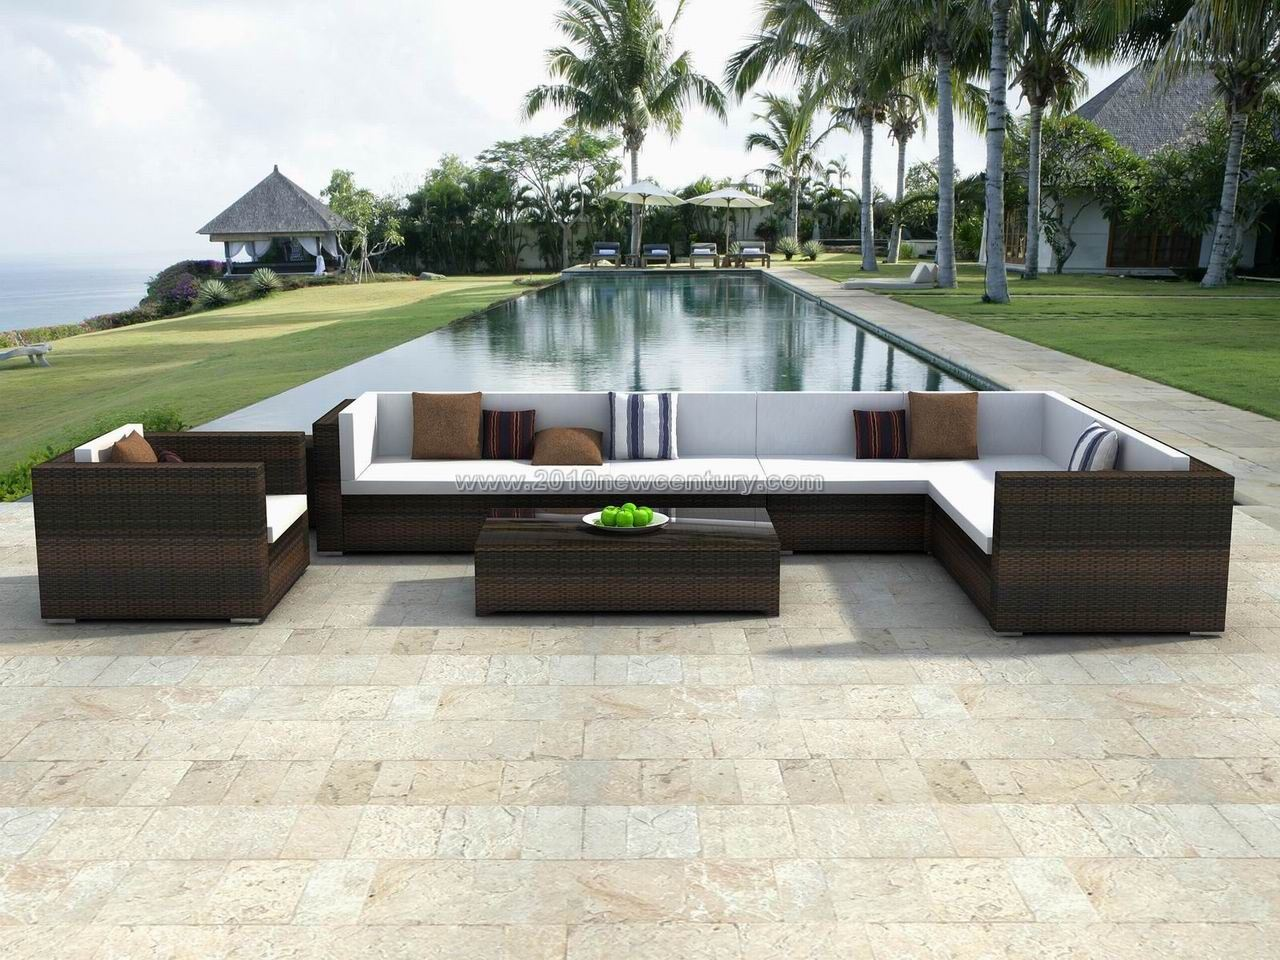 China wicker furniture outdoor furniture rattan for Outdoor patio furniture